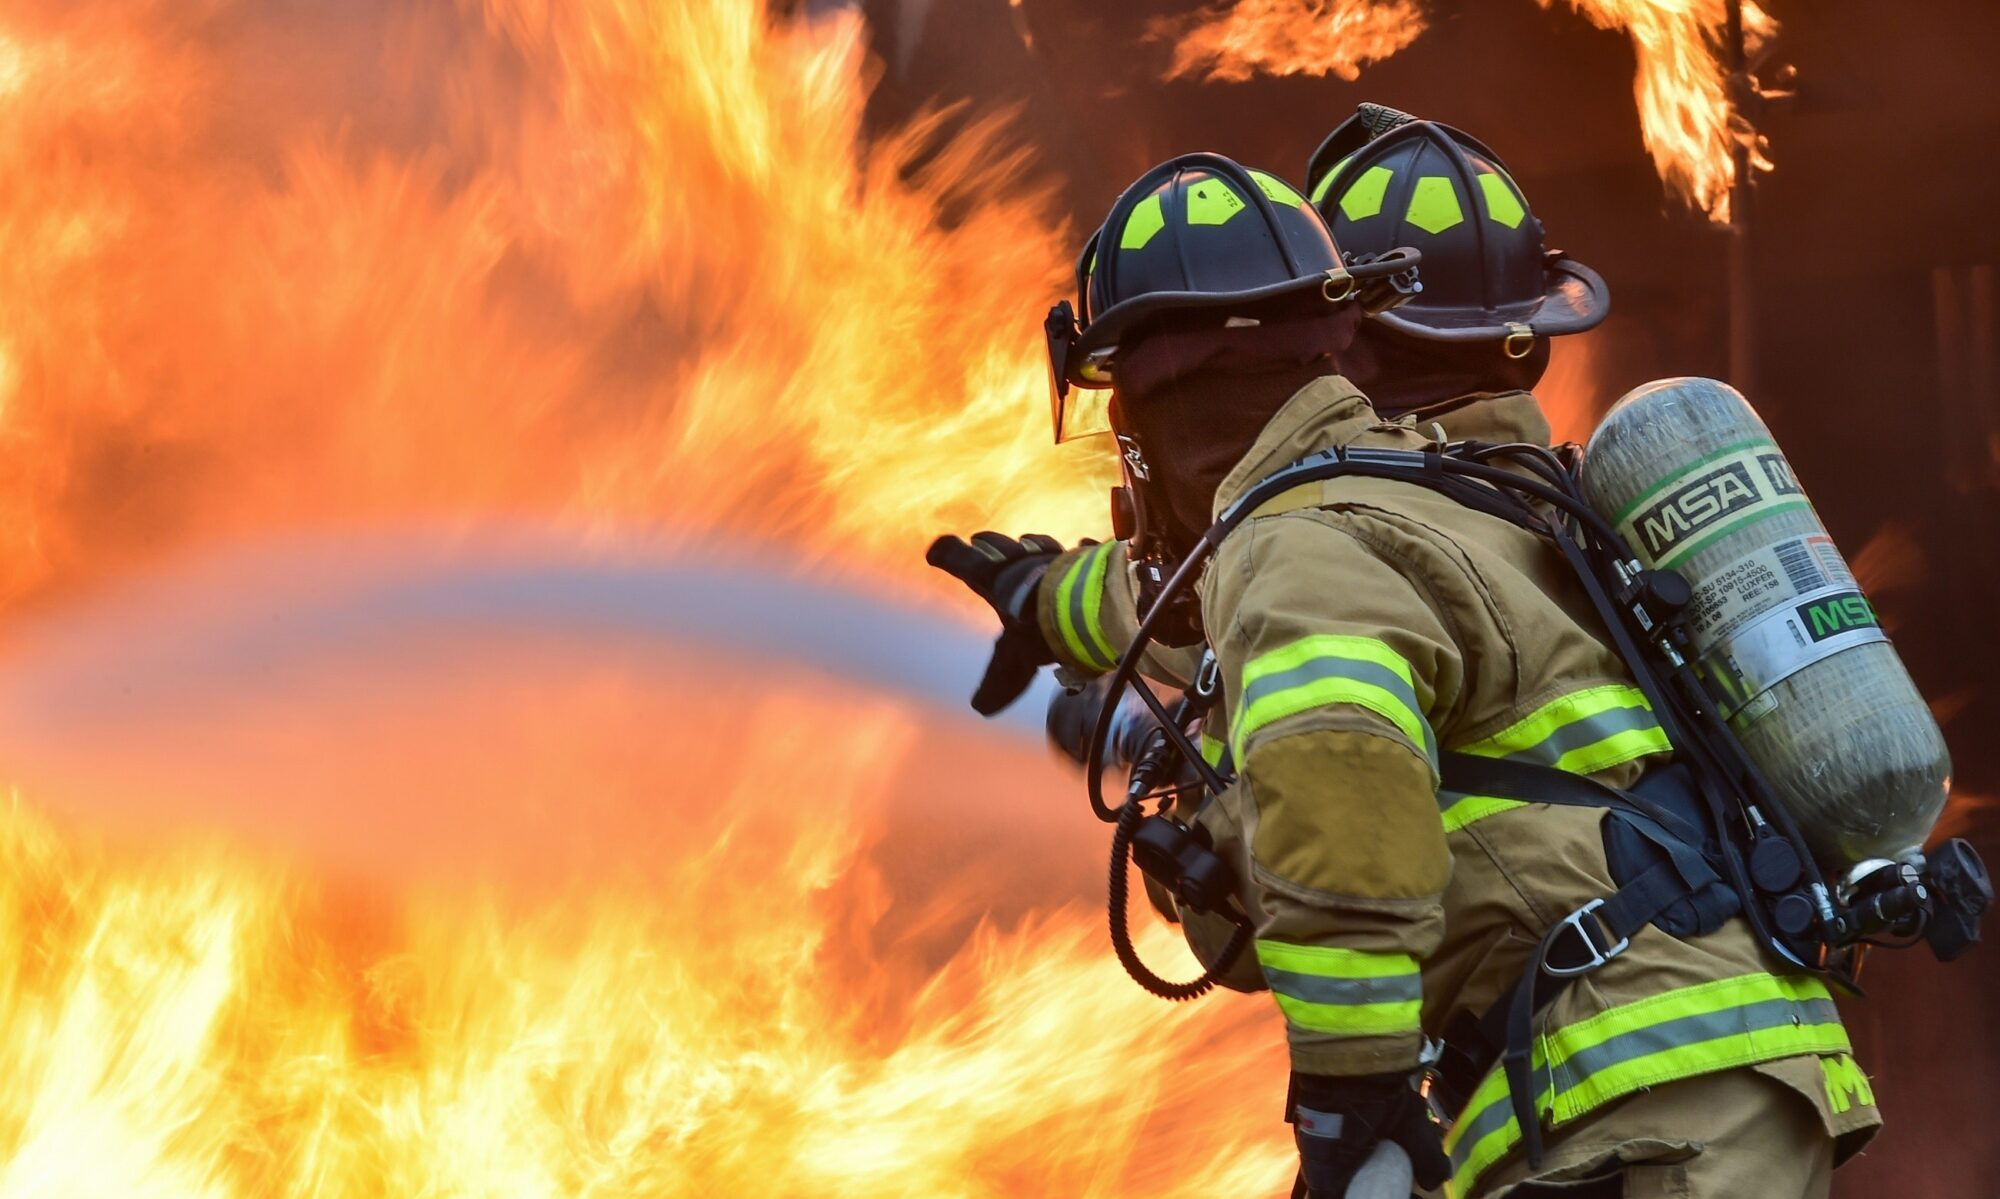 Elmsdale Fire & Emergency Services